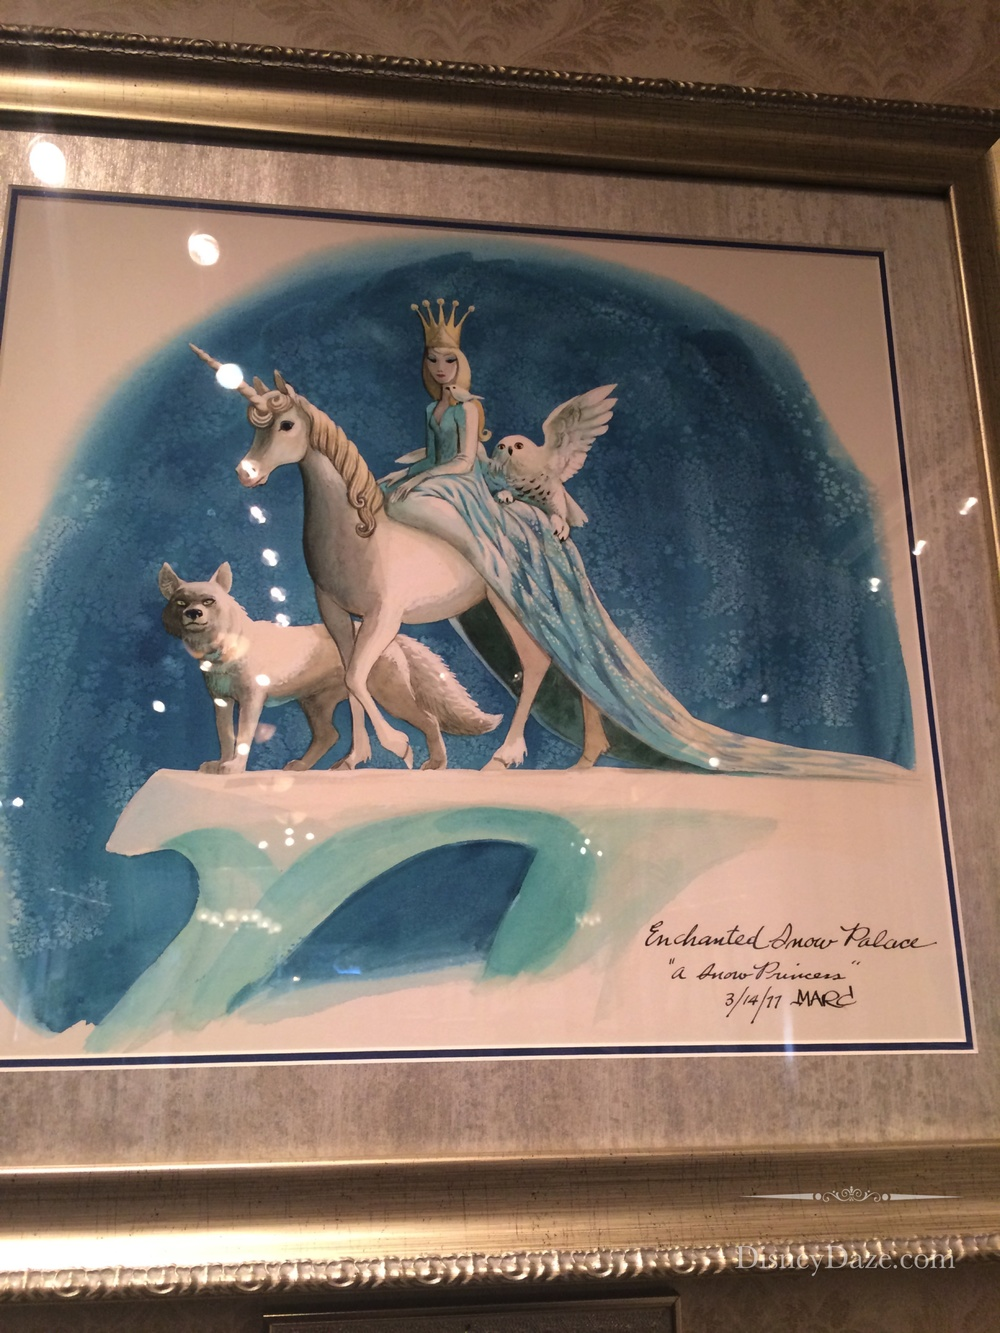 Original Artwork by Marc Davis